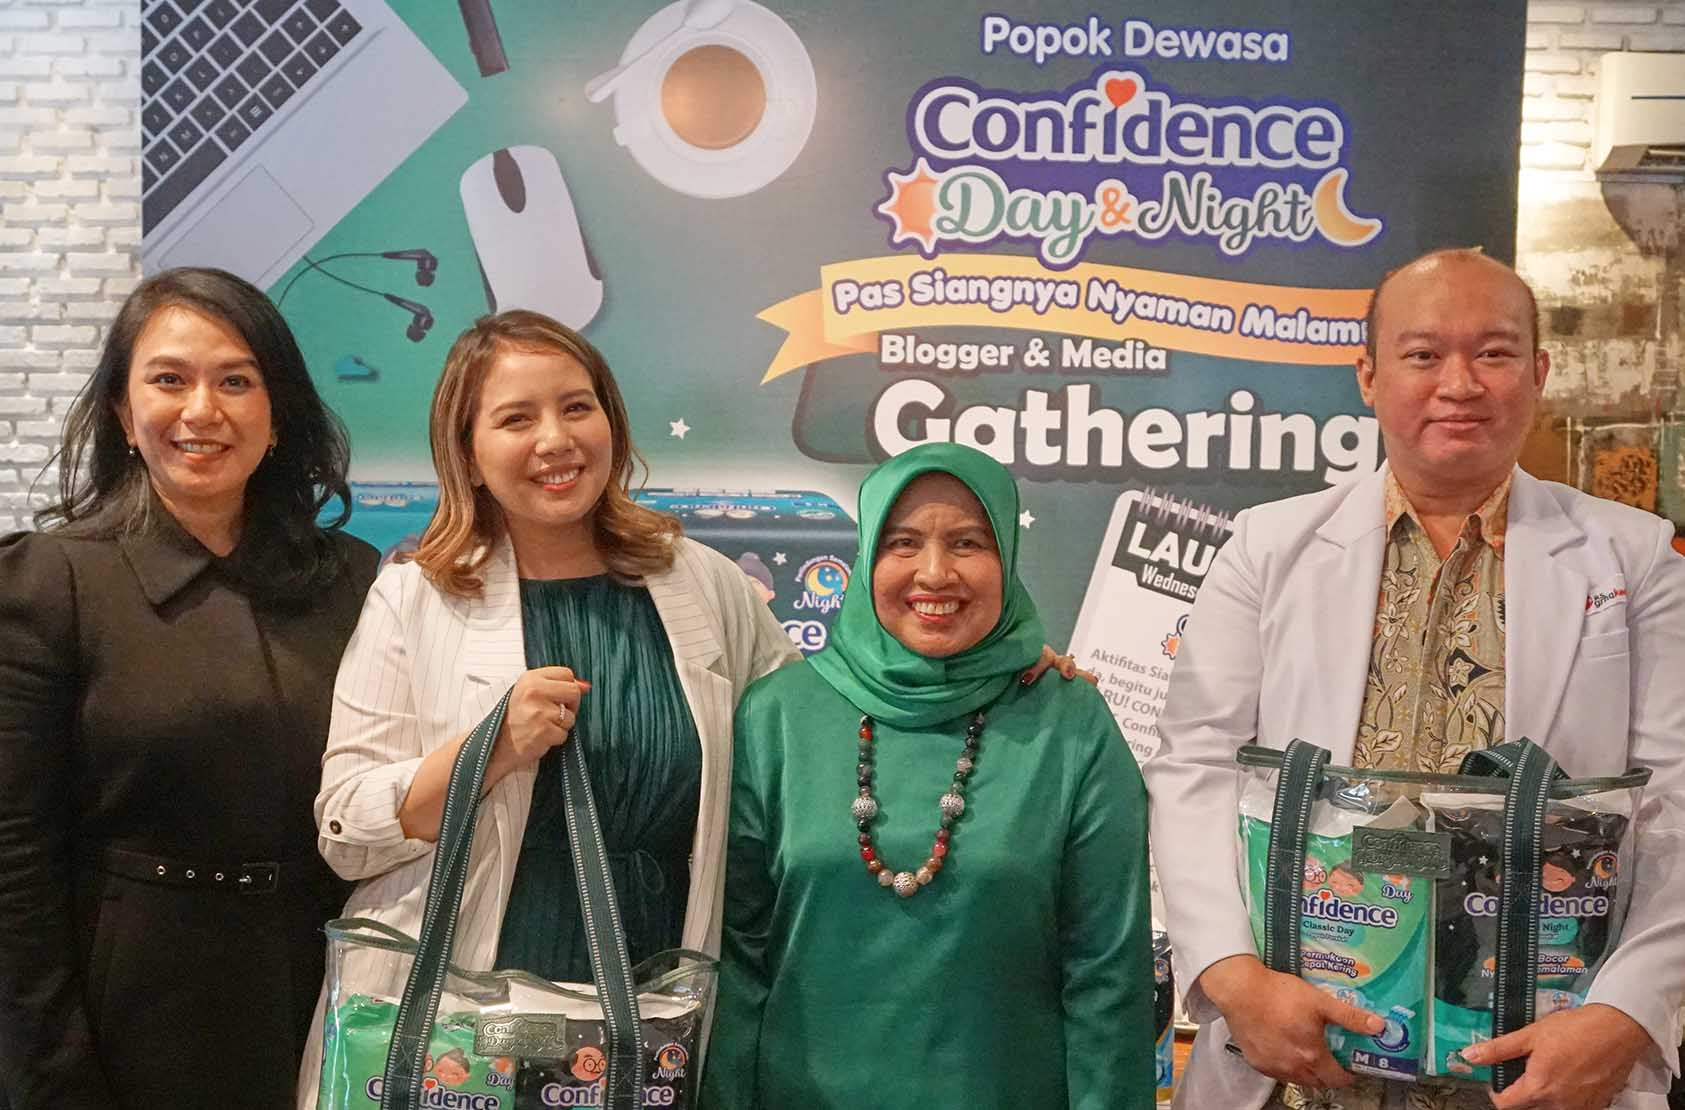 LAUNCHING CONFIDENCE DAY & NIGHT